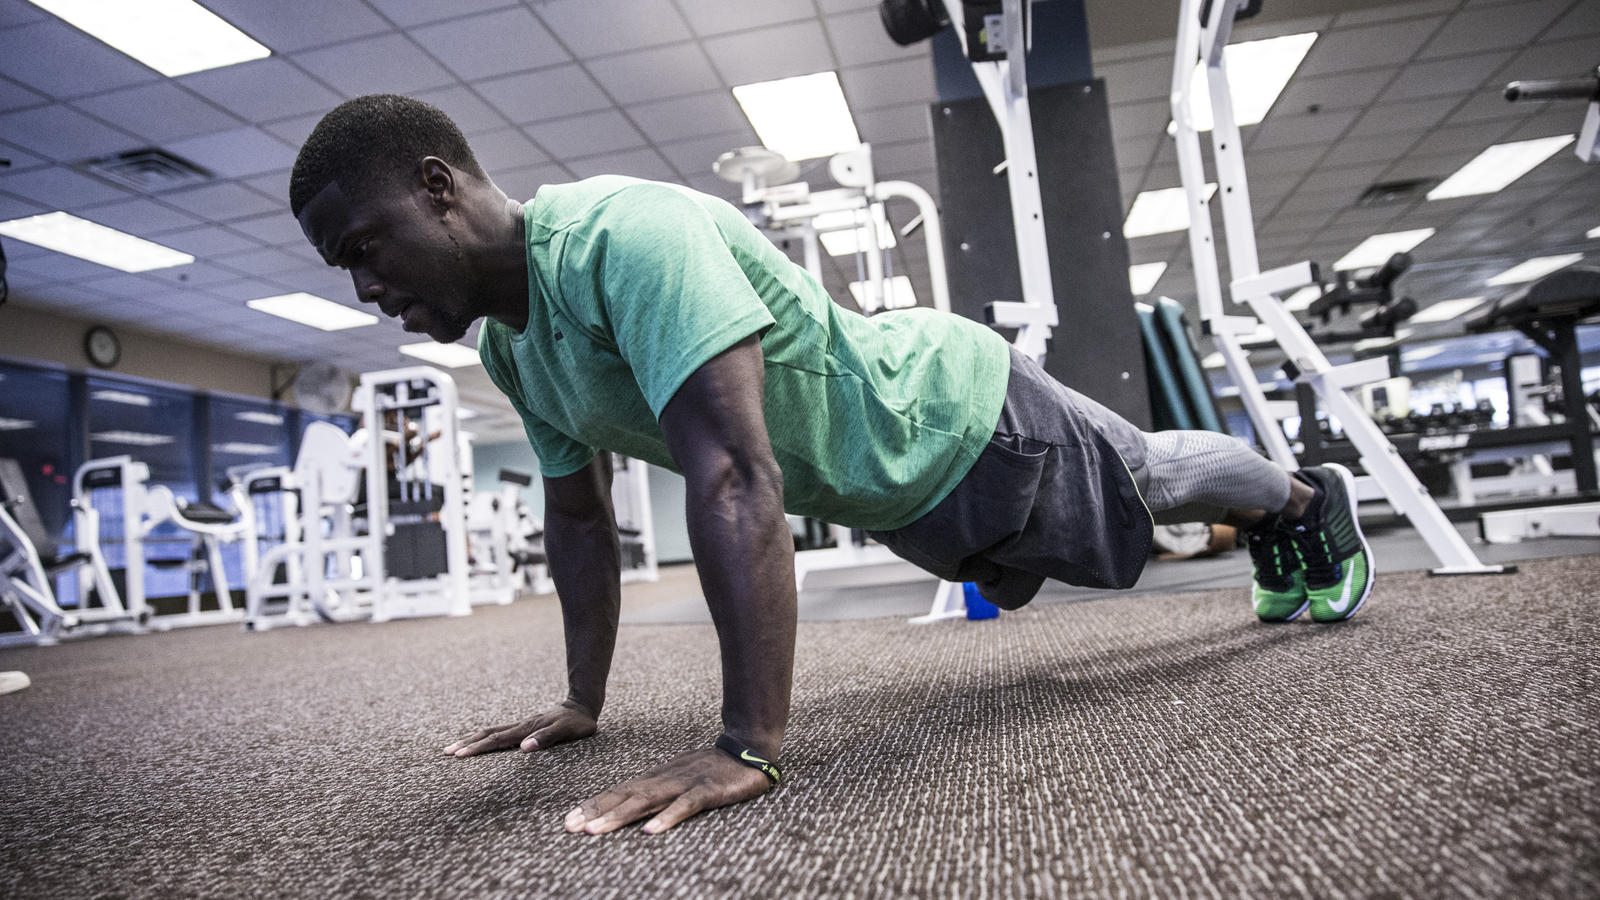 15103_nike_gc_kevin_hart_gym-40_hd_1600